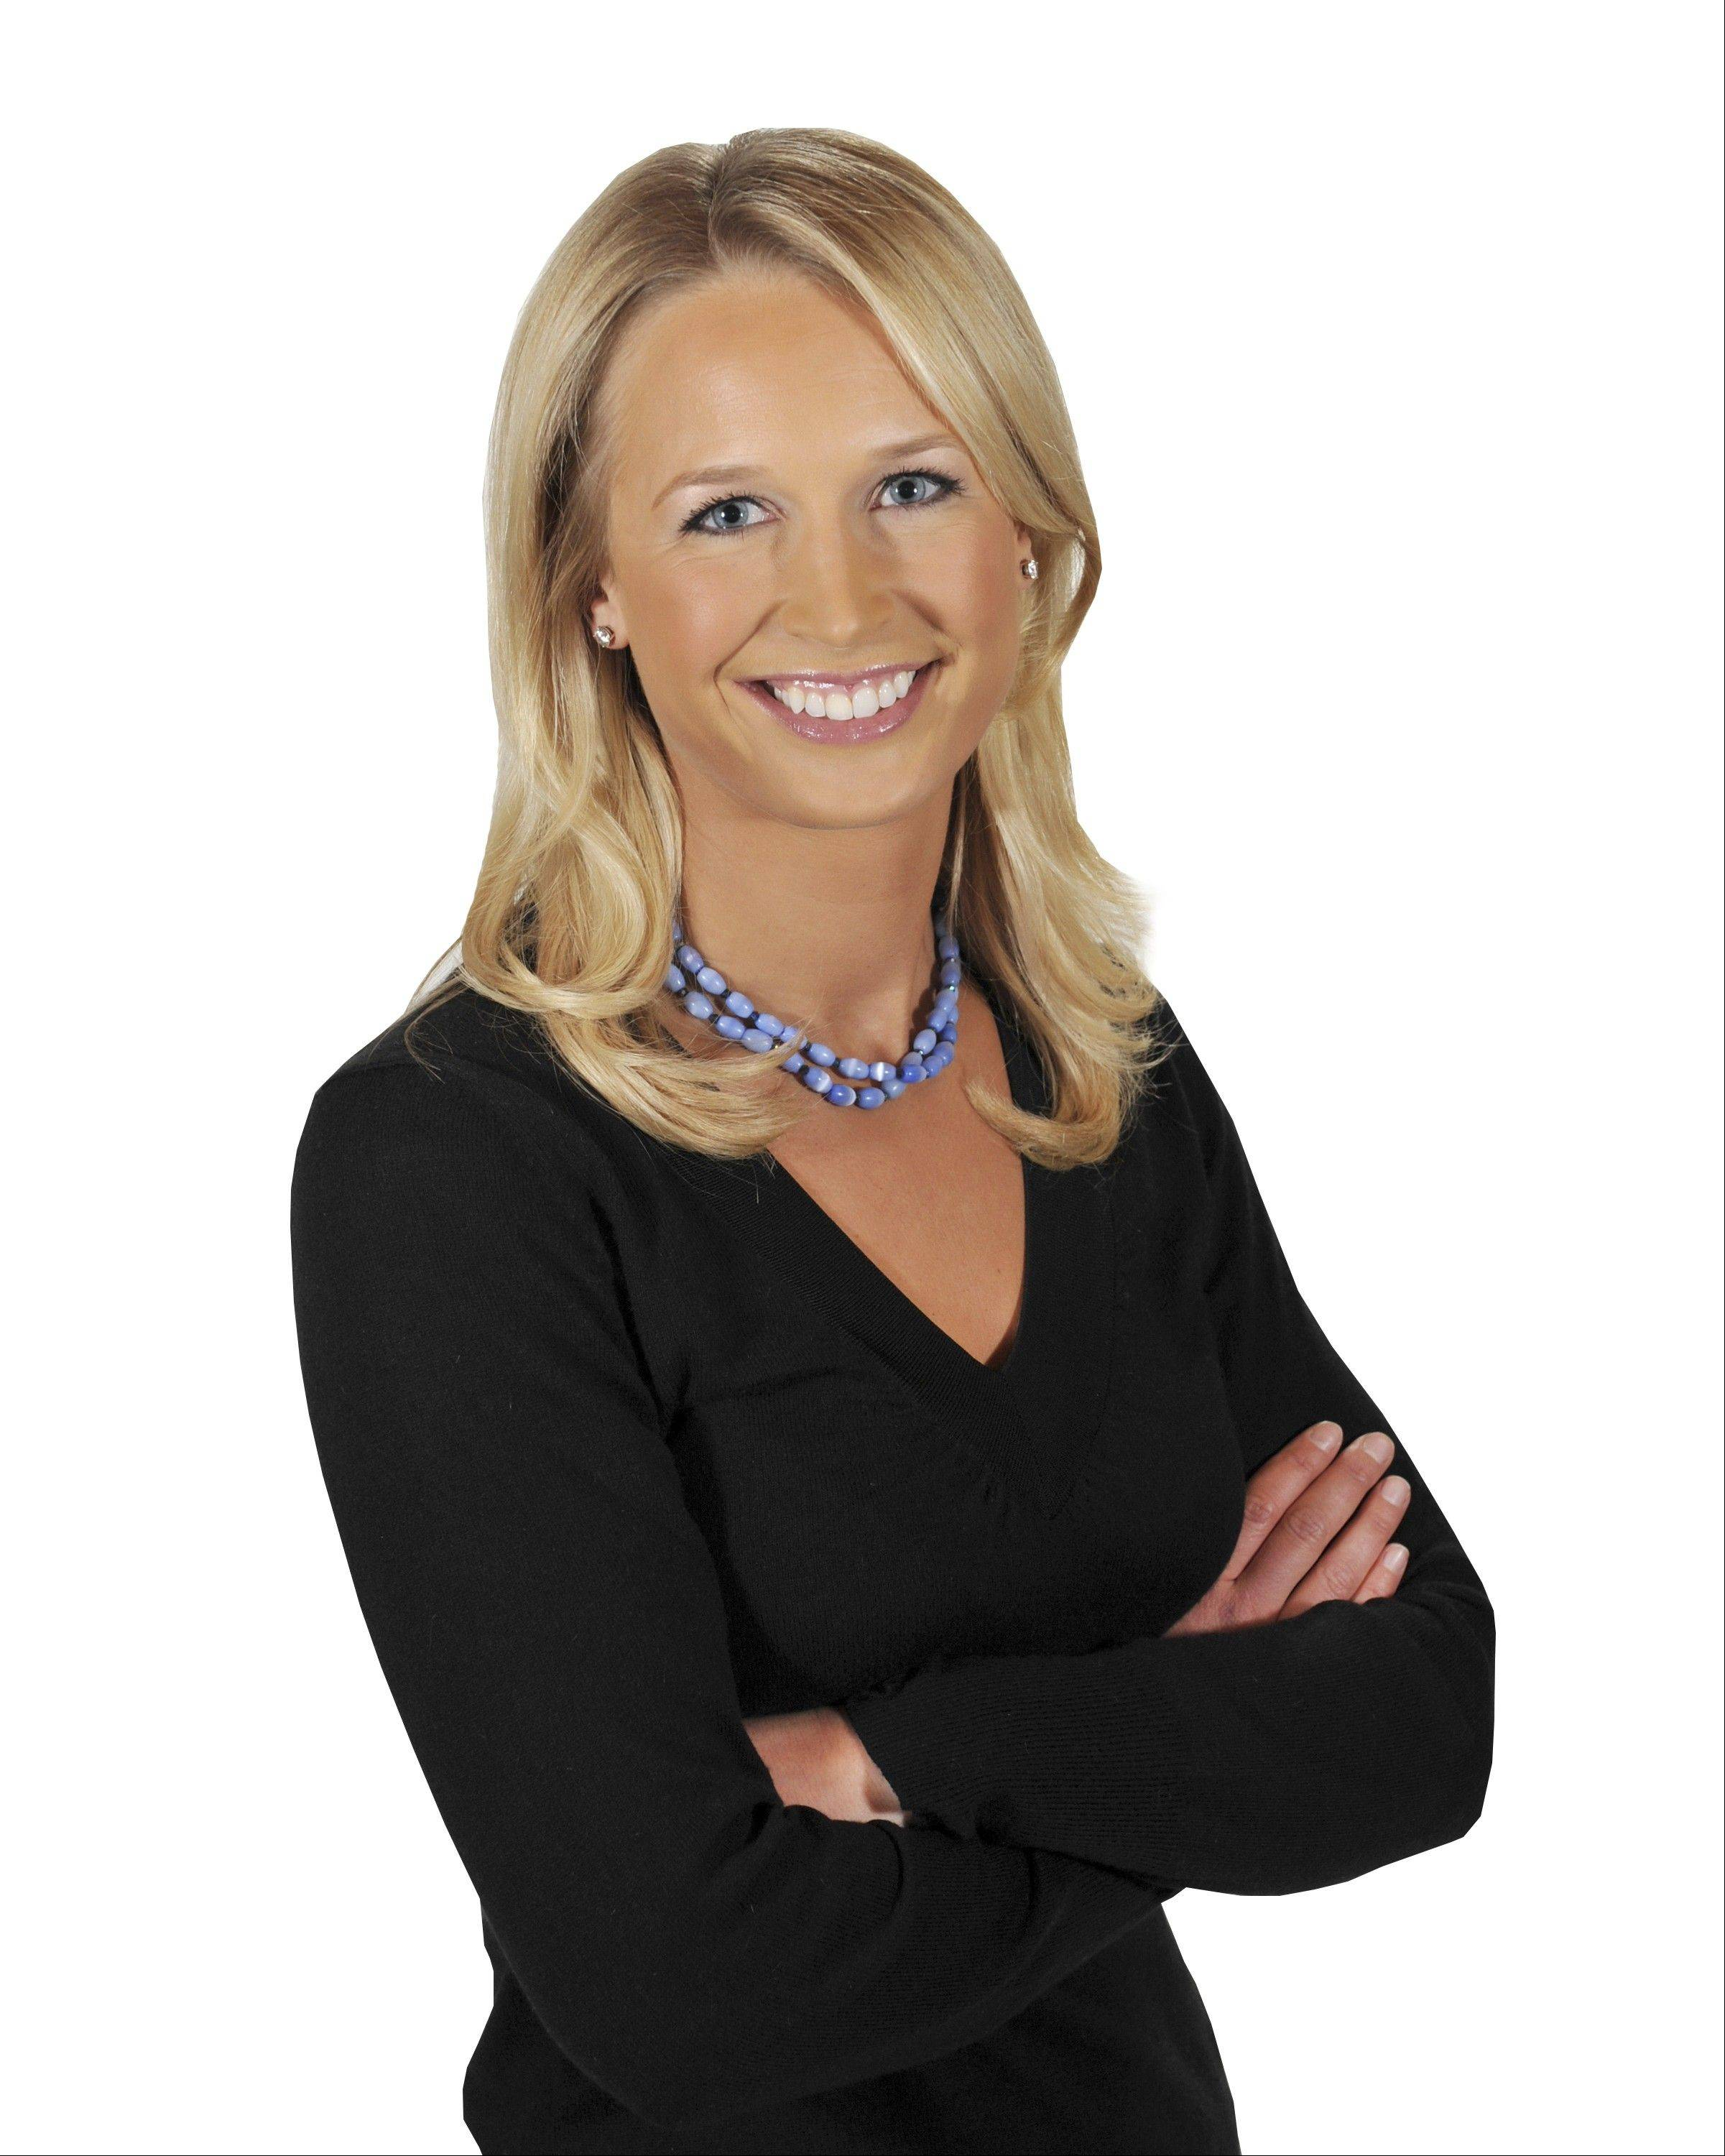 Former CSN Chicago reporter and anchor Sarah Kustok has left Chicago to work for the YES Network as part of its Brooklyn Nets broadcast team.